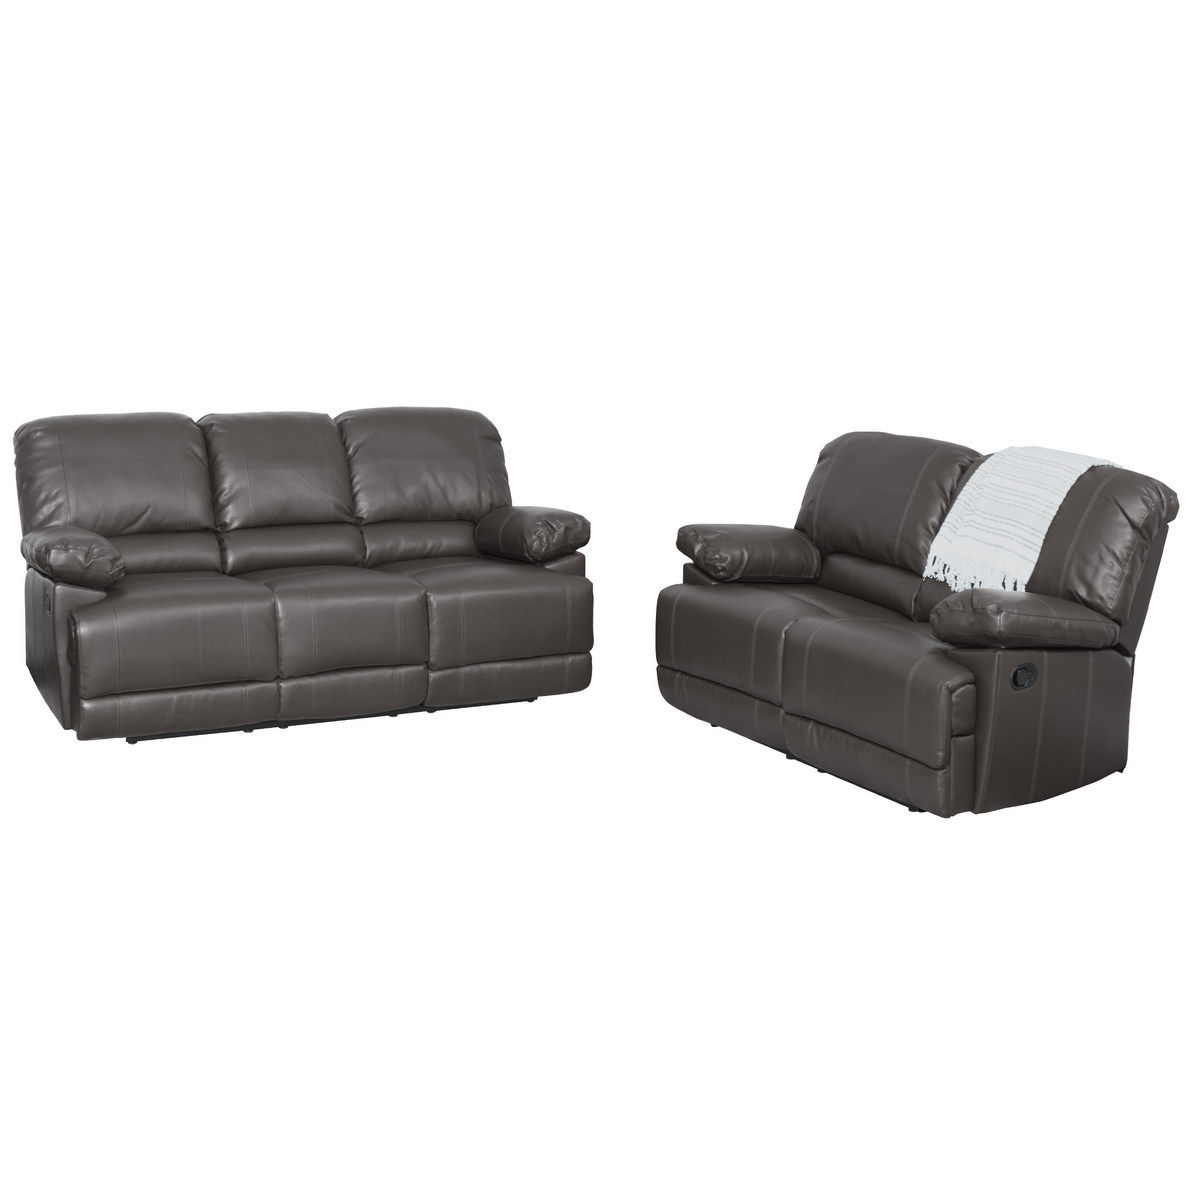 Corliving Bonded Leather Reclining Sofa Set